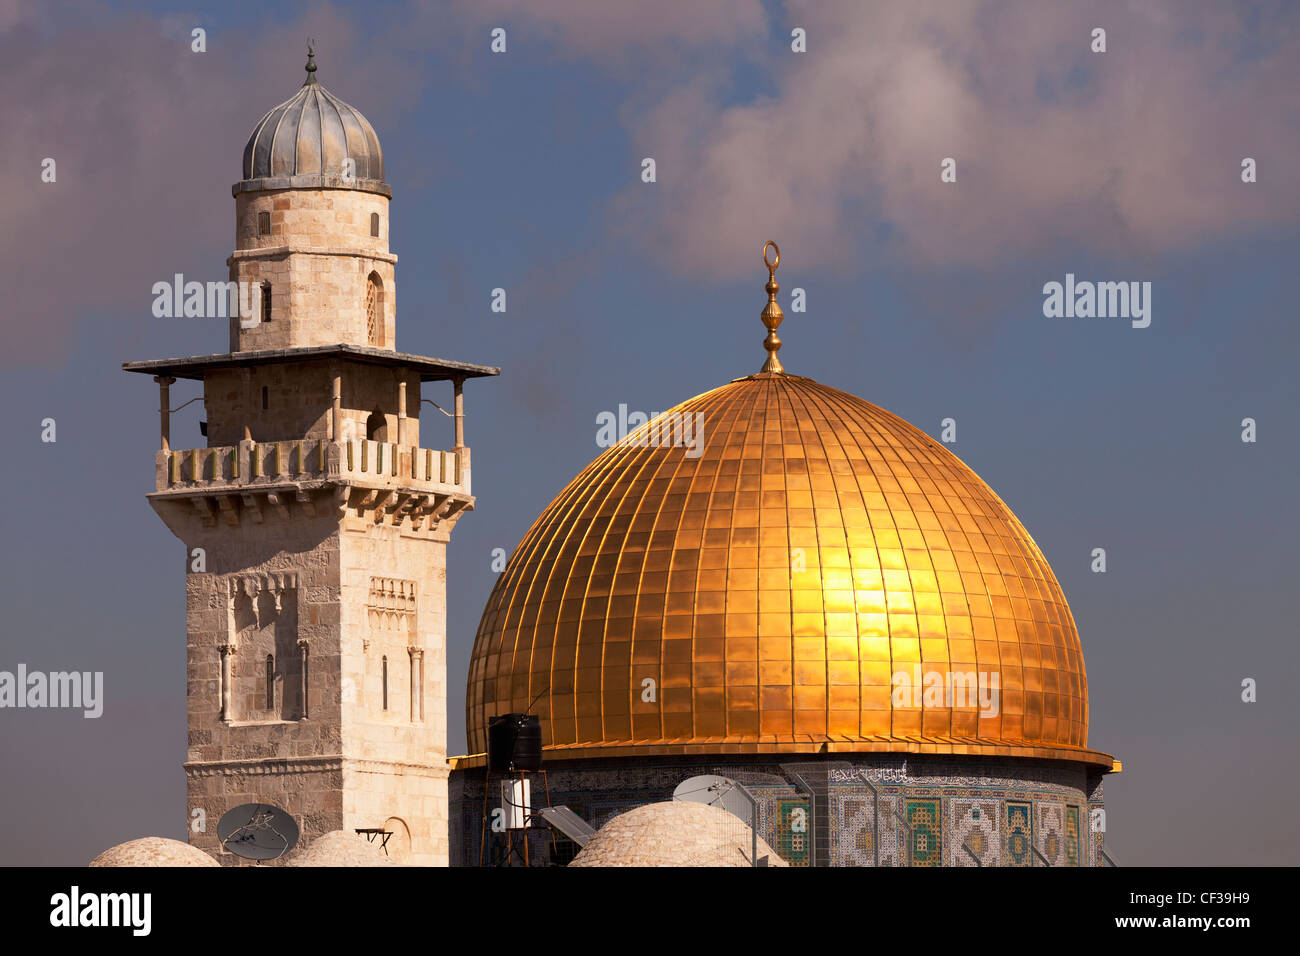 Israel,Jerusalem,Dome of the Rock and minaret Stock Photo